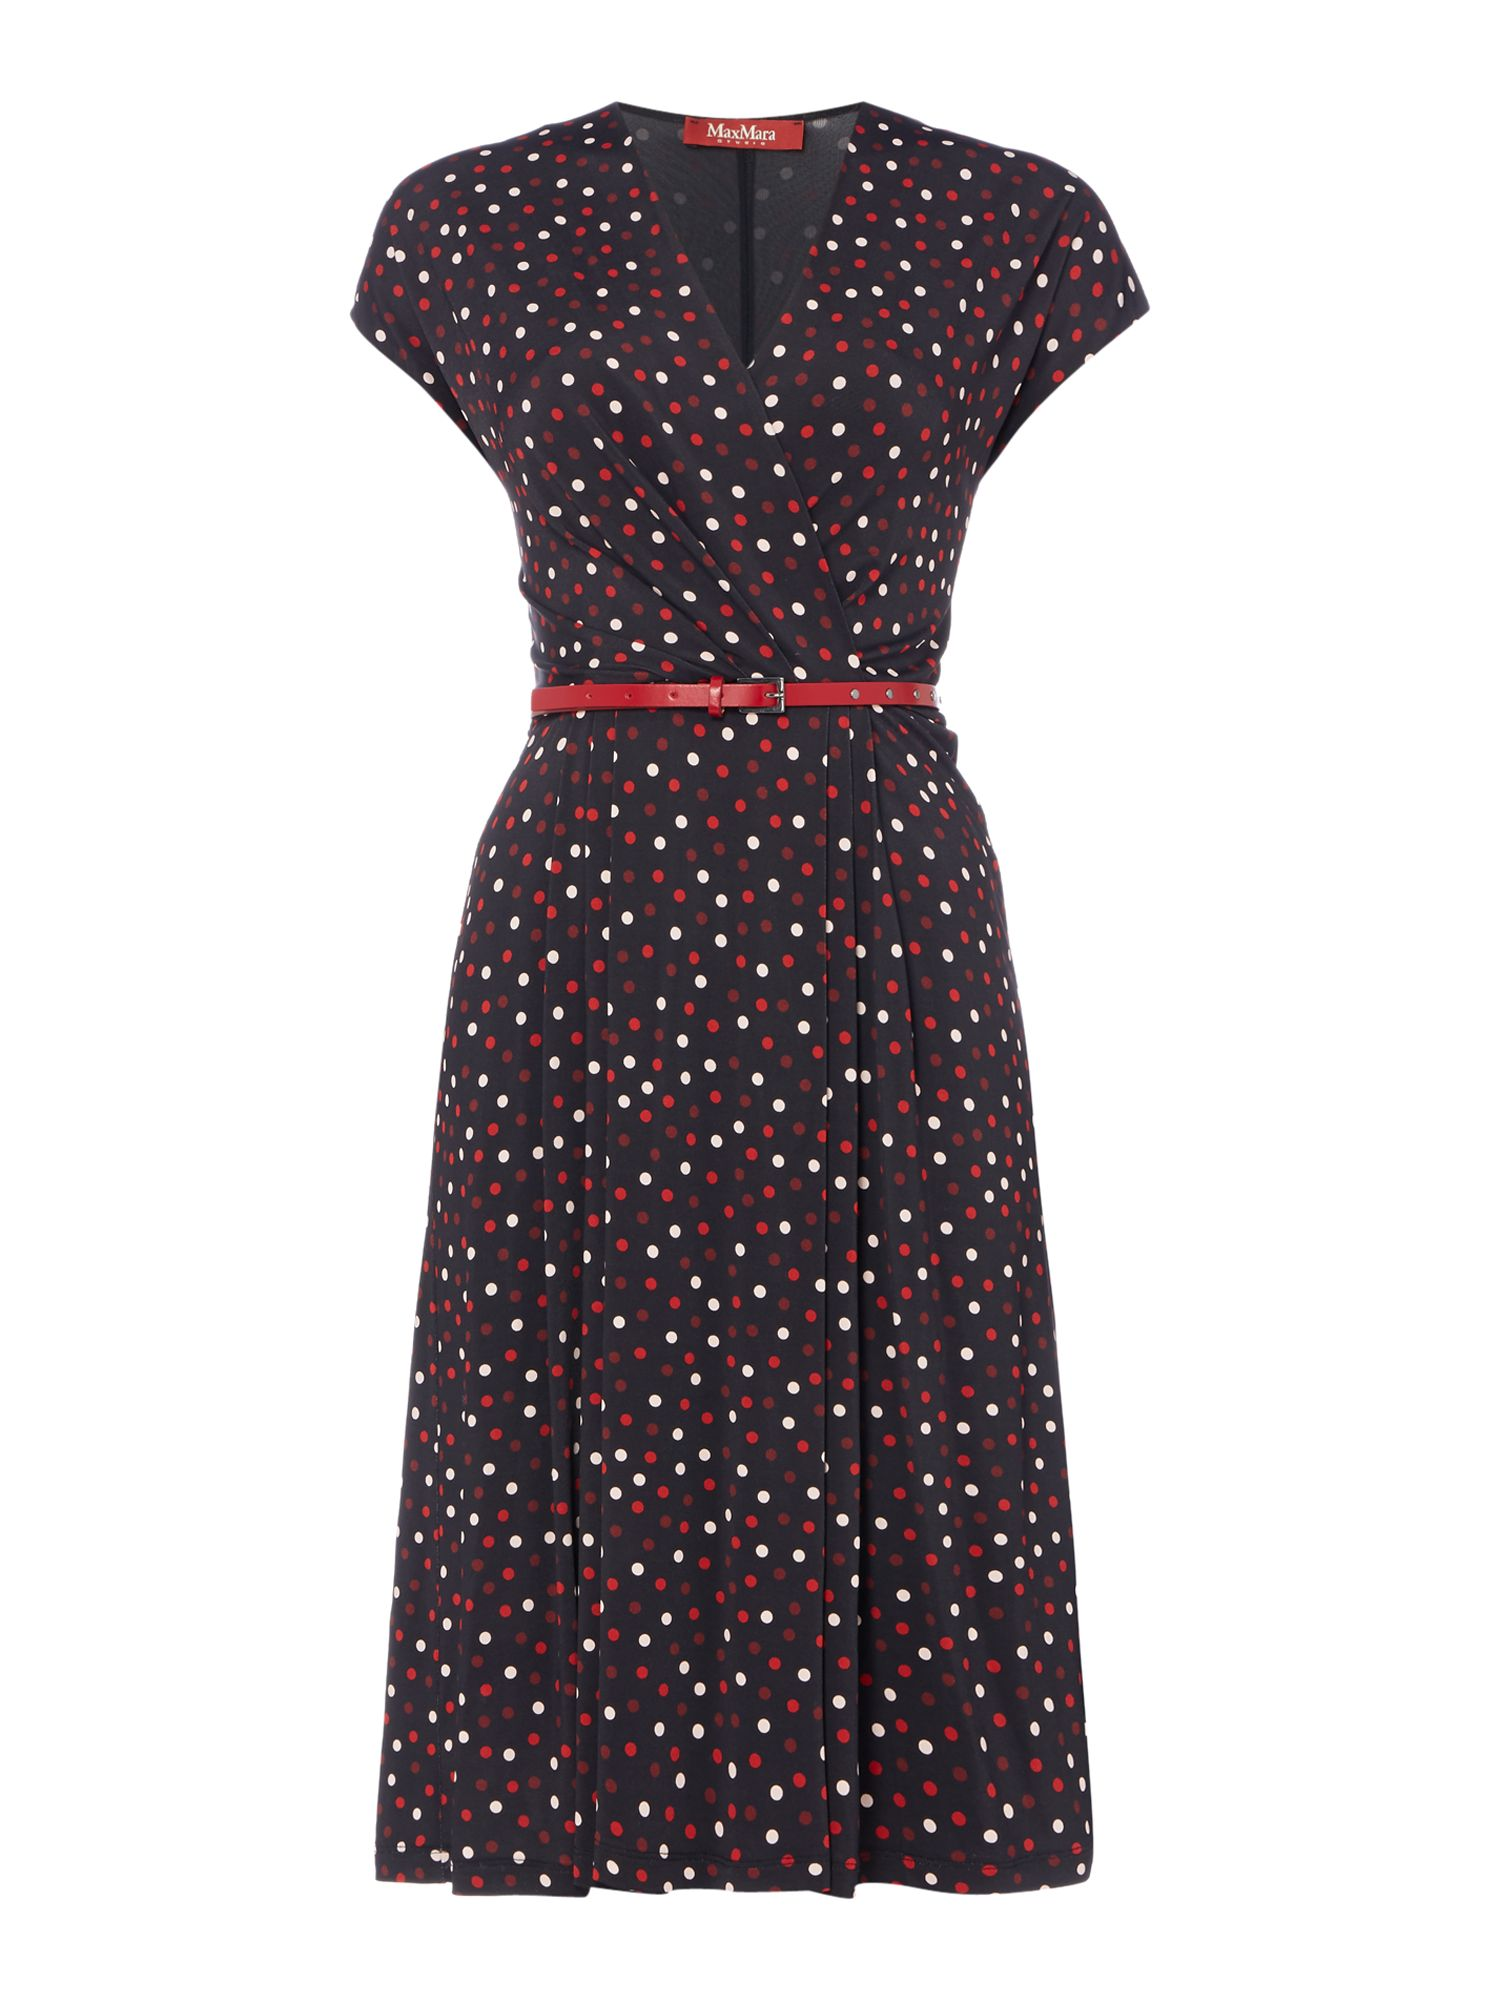 Max Mara Studio Arlette sleeveless polka dot dress, Black